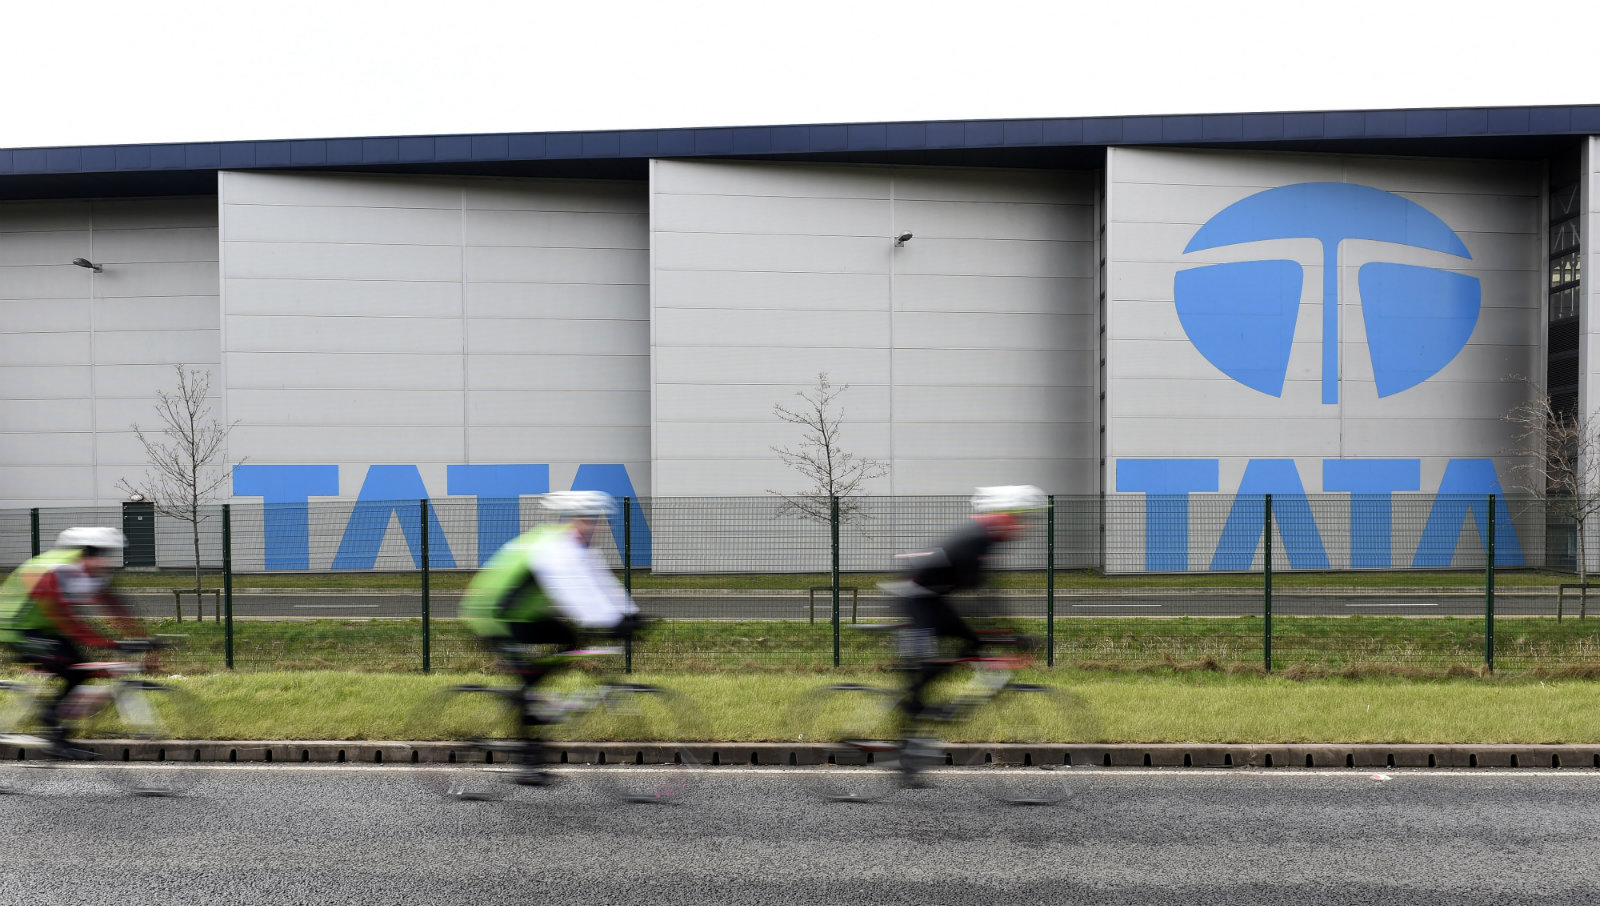 Cyclists ride past the Tata steelworks in the town of Port Talbot, Wales, Britain March 30, 2016.